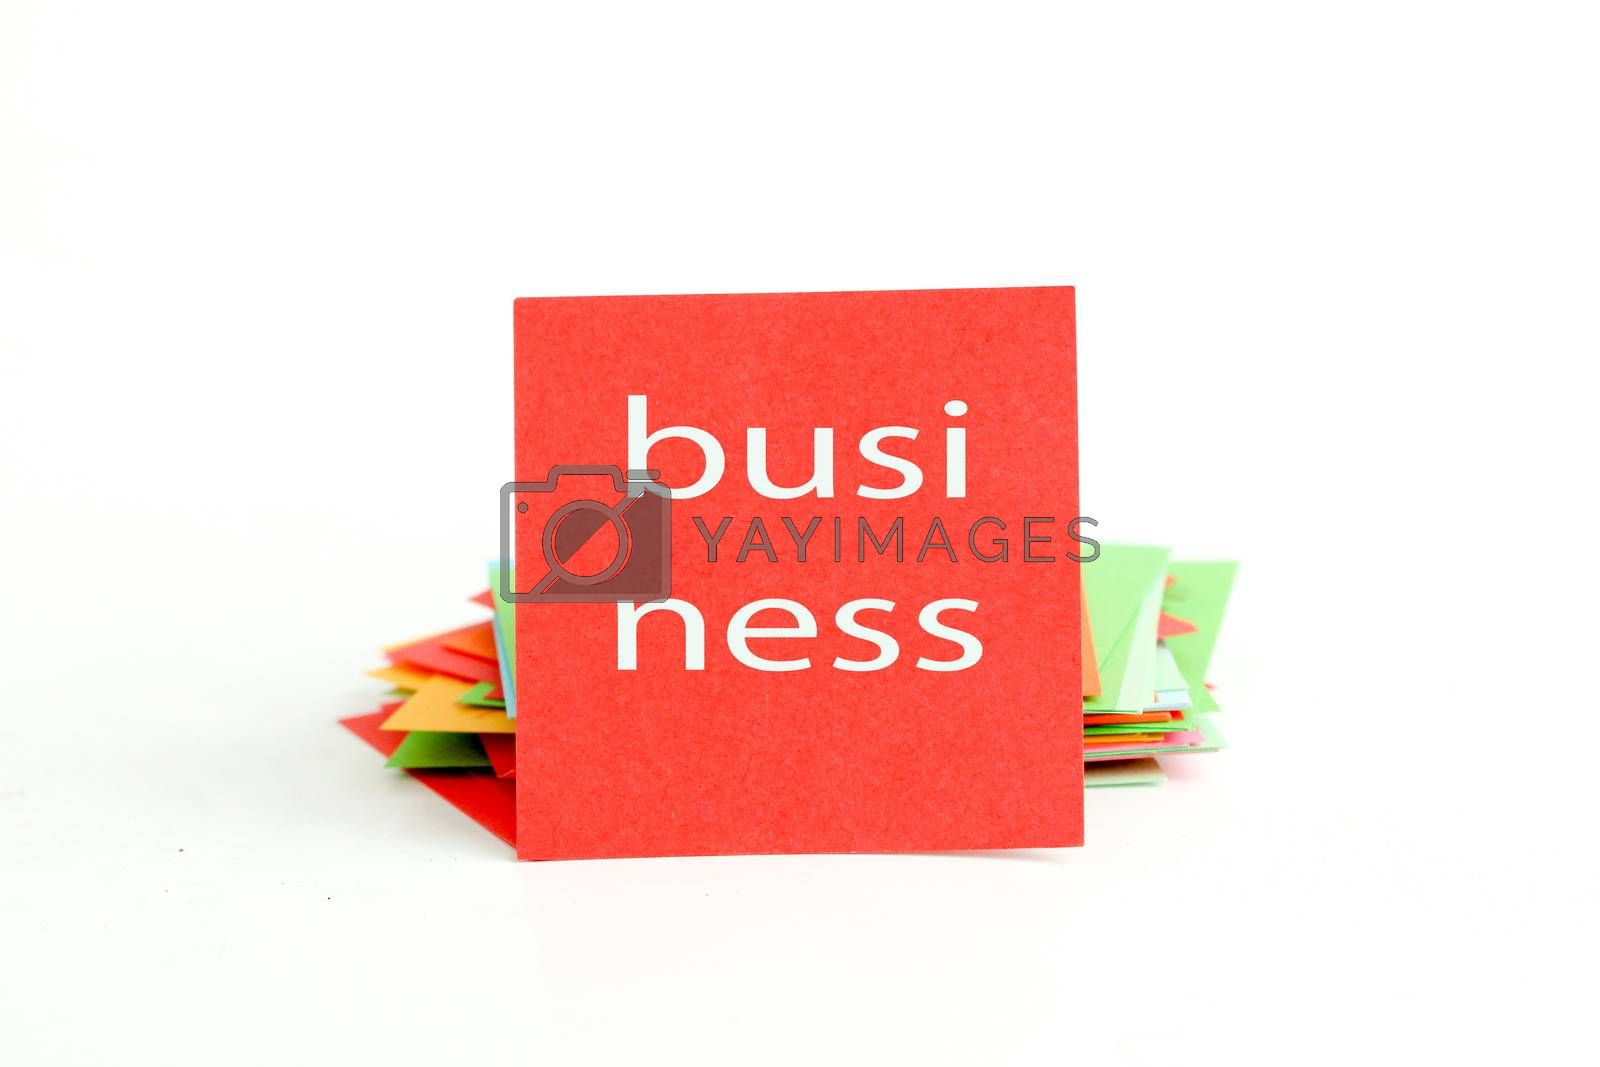 picture of a red note paper with text business